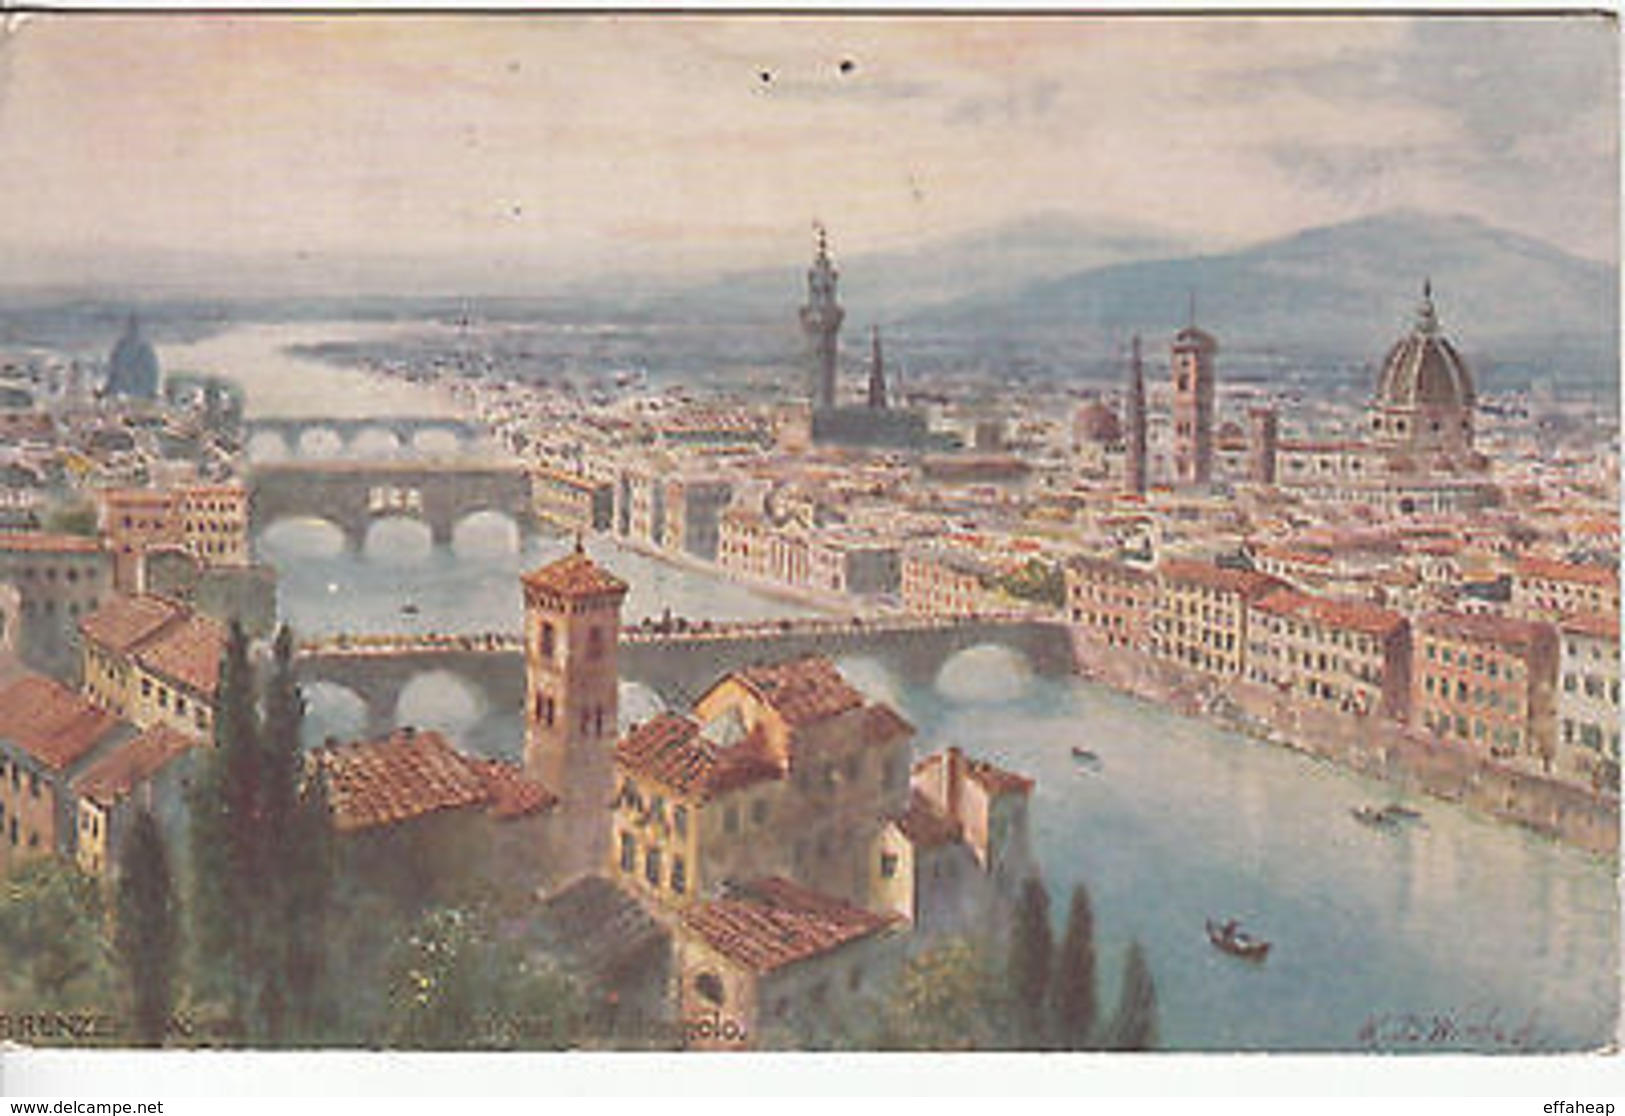 Italy: Postcard, Florence; Firenze To Portsmouth, USA, 4 July 1927 - Italy